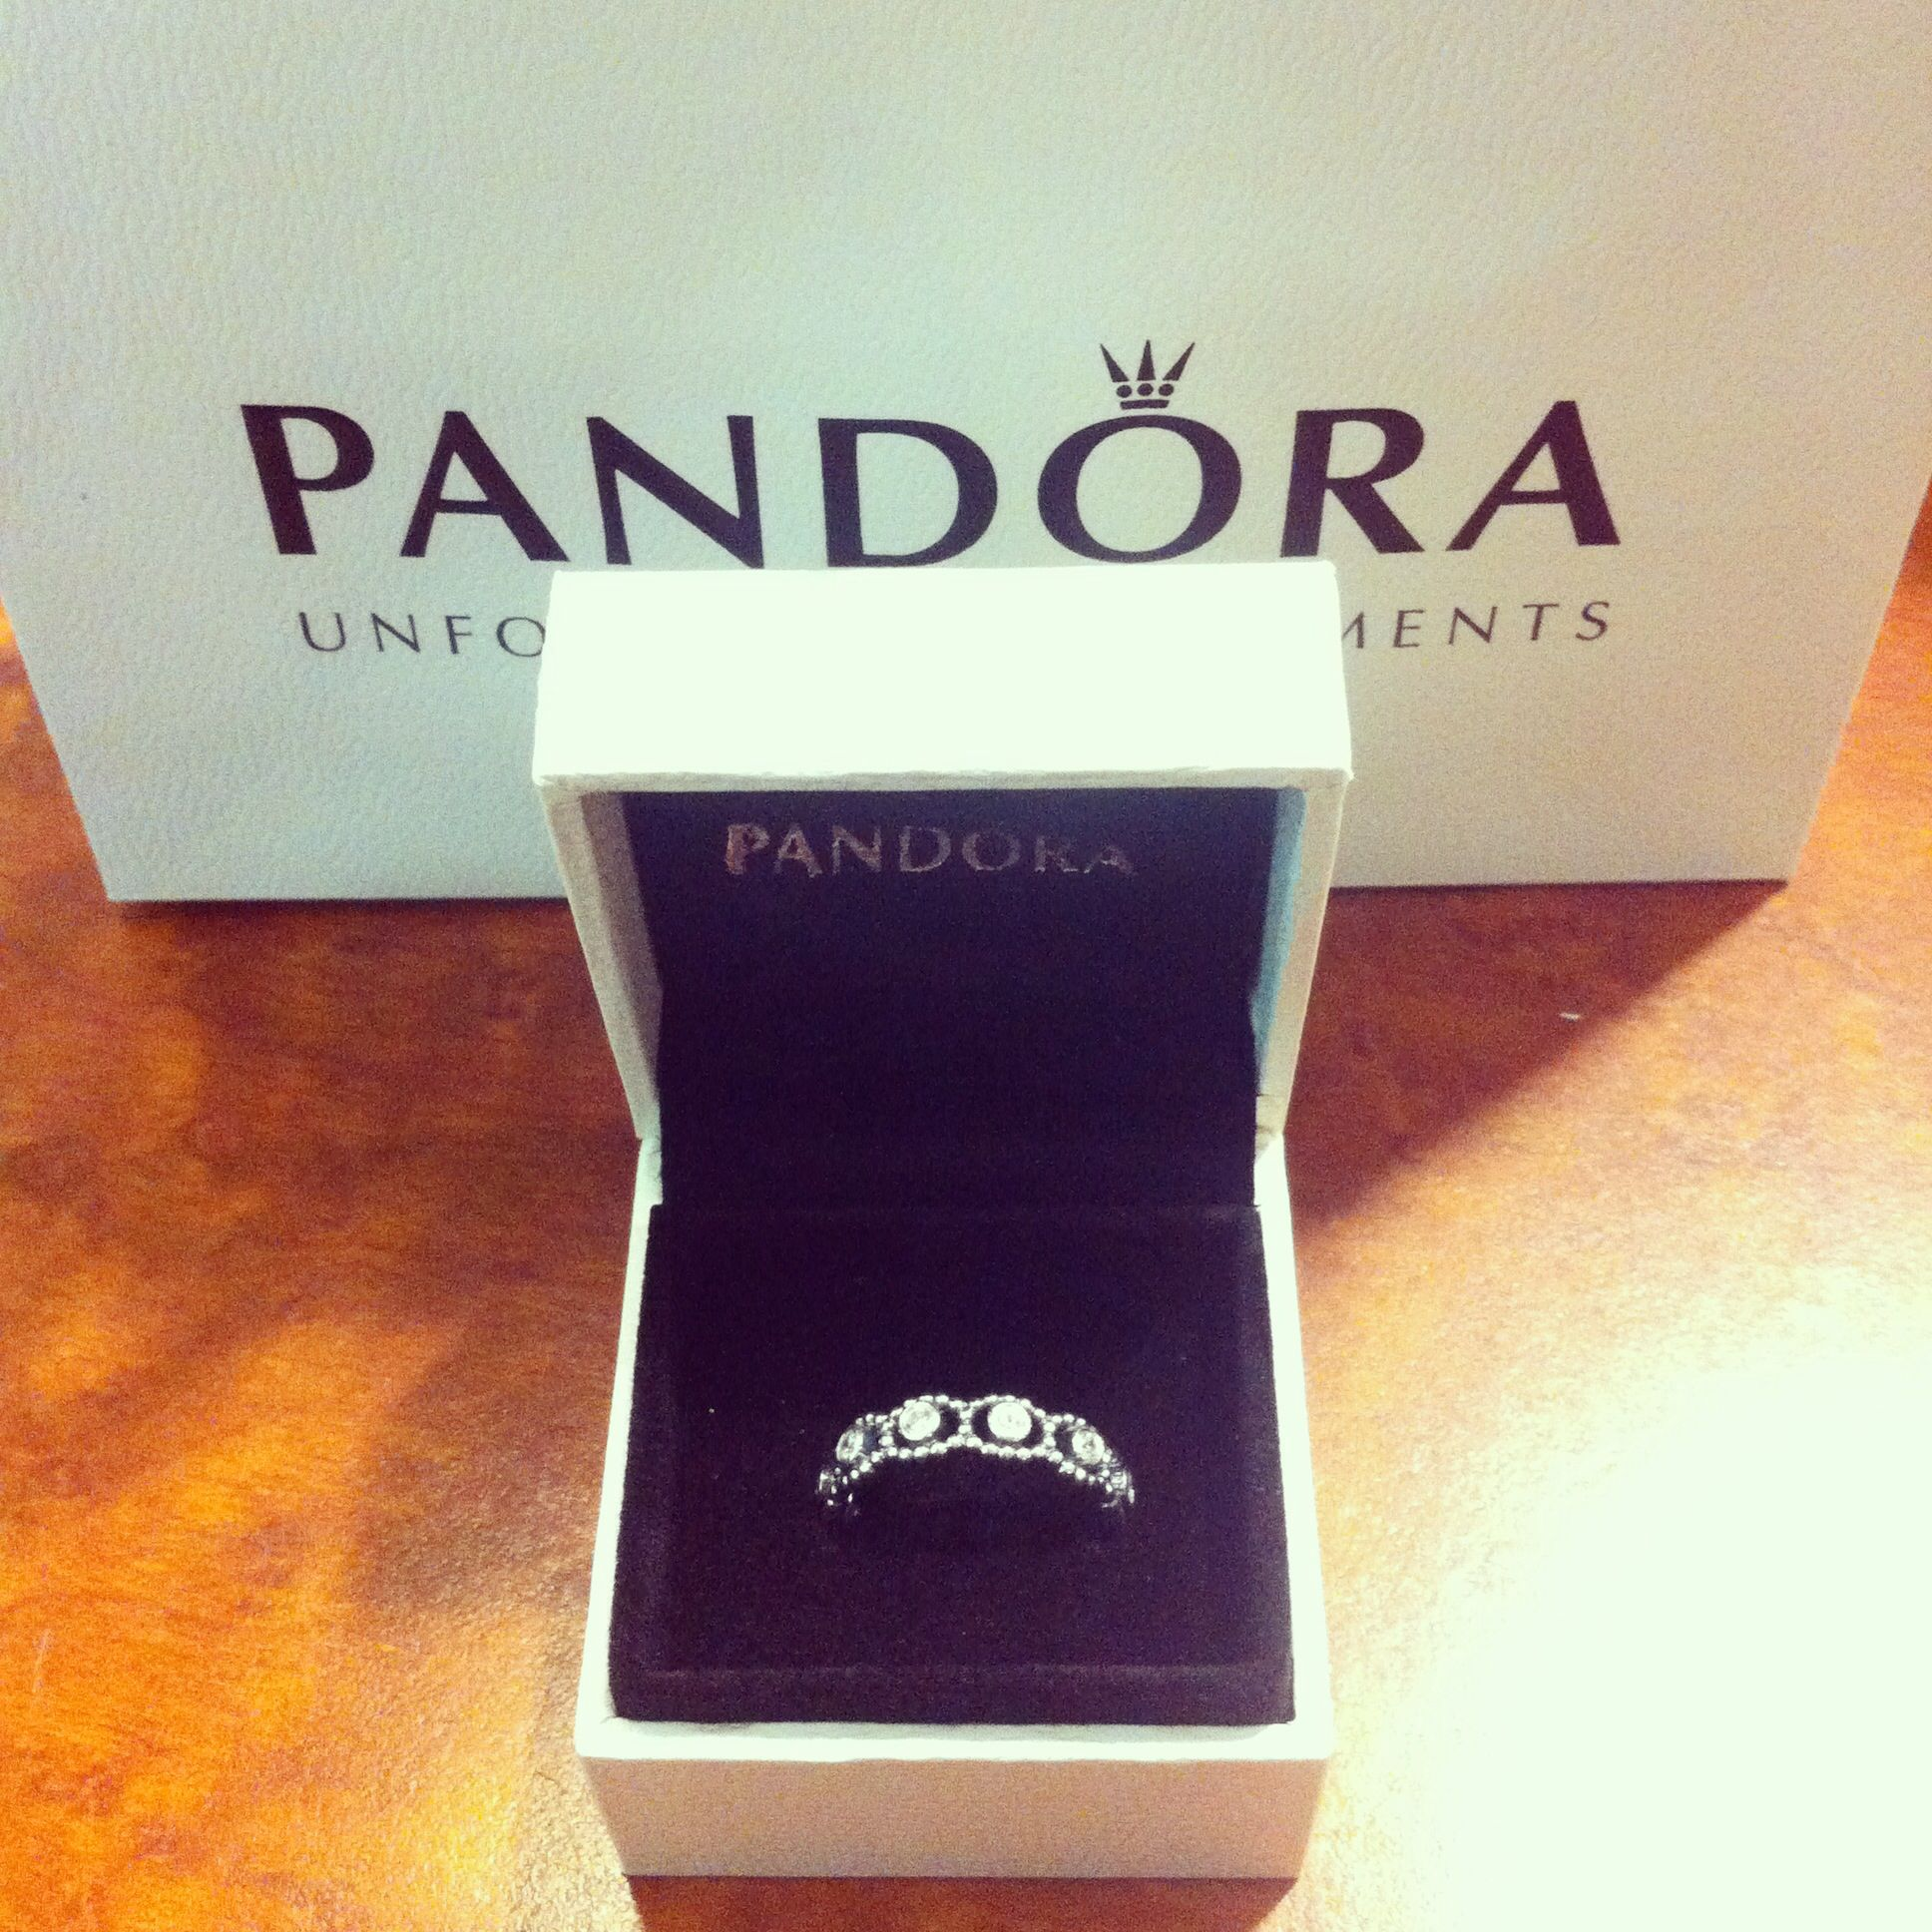 fbf89ce74169b My boyfriend andrew got me a new pandora 'promise' ring since my ...